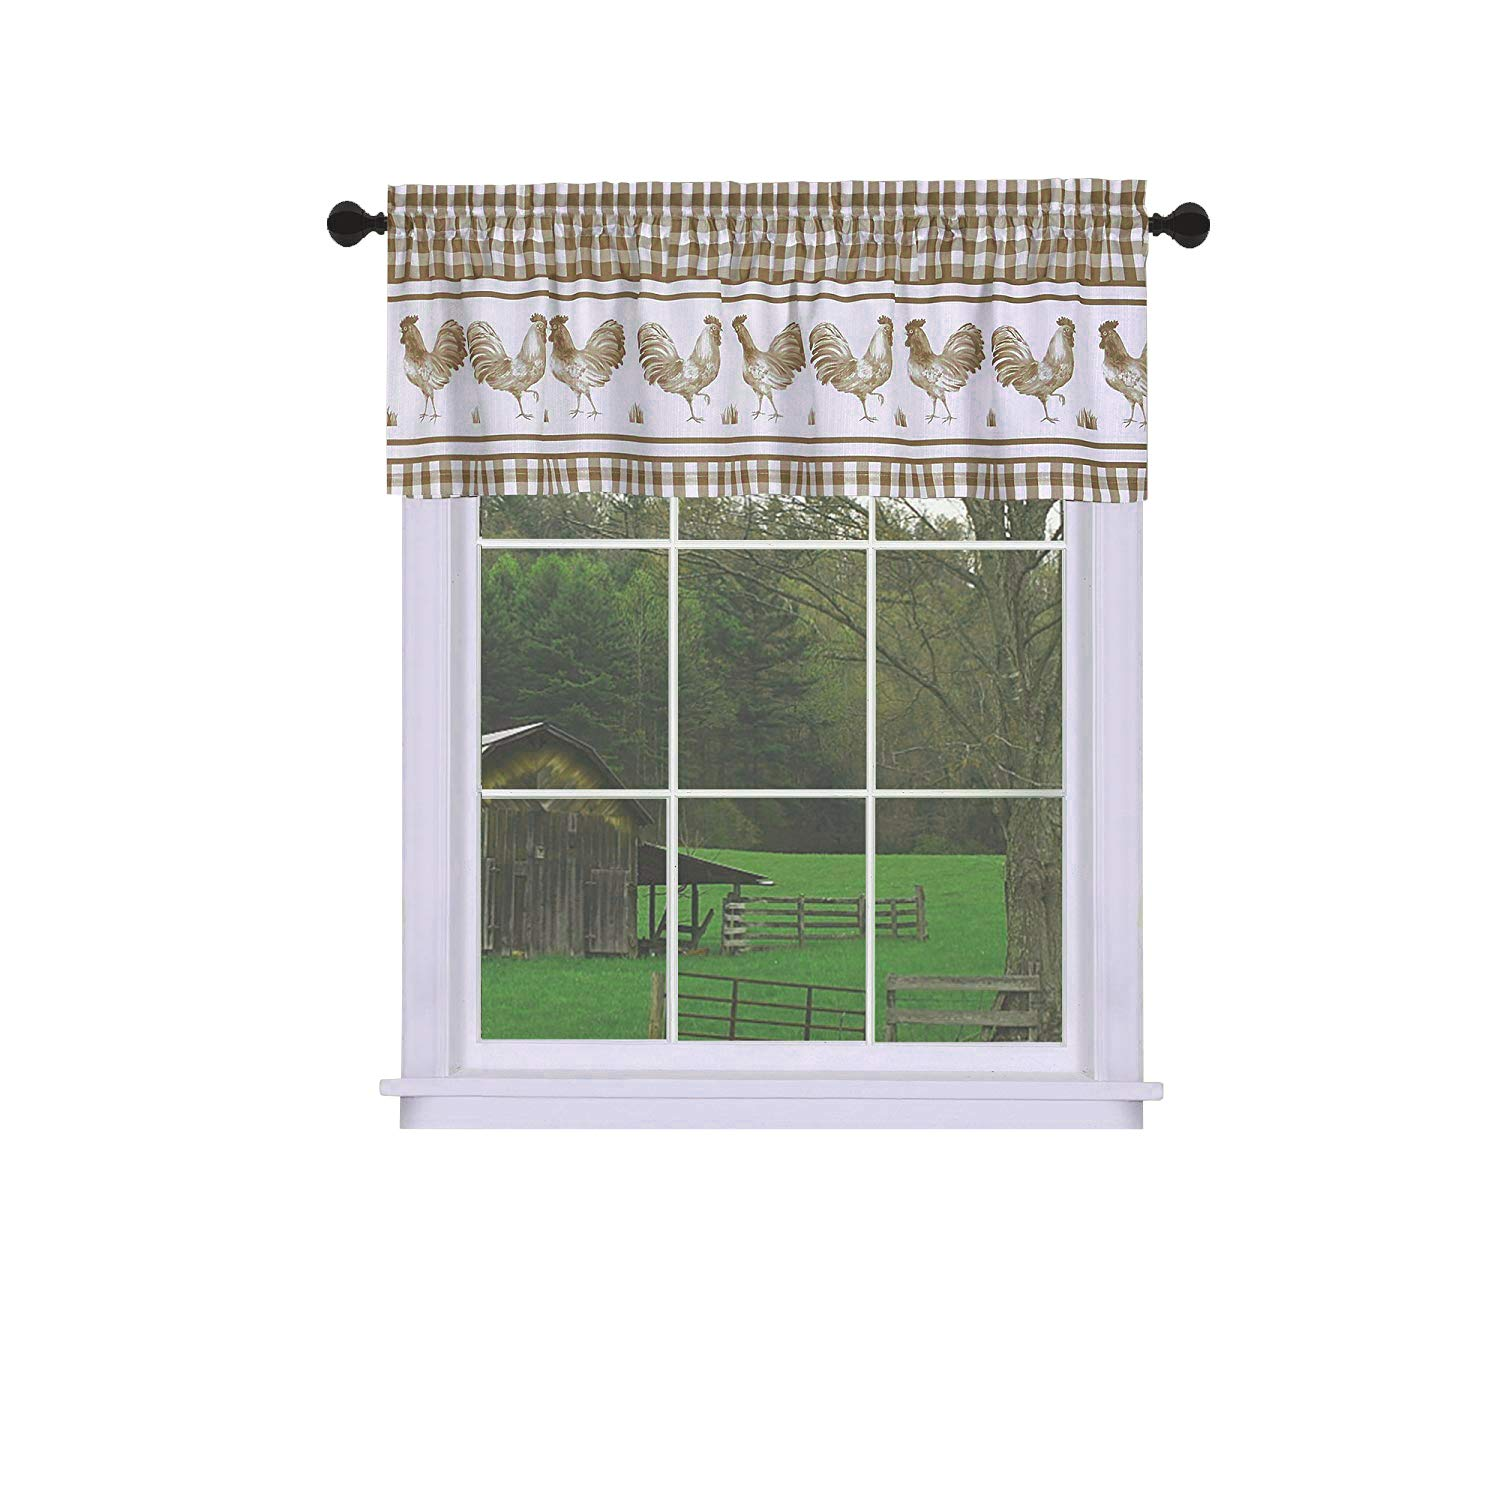 GoodGram Plaid Rooster Window Curtain Valance - Assorted Colors (Taupe)